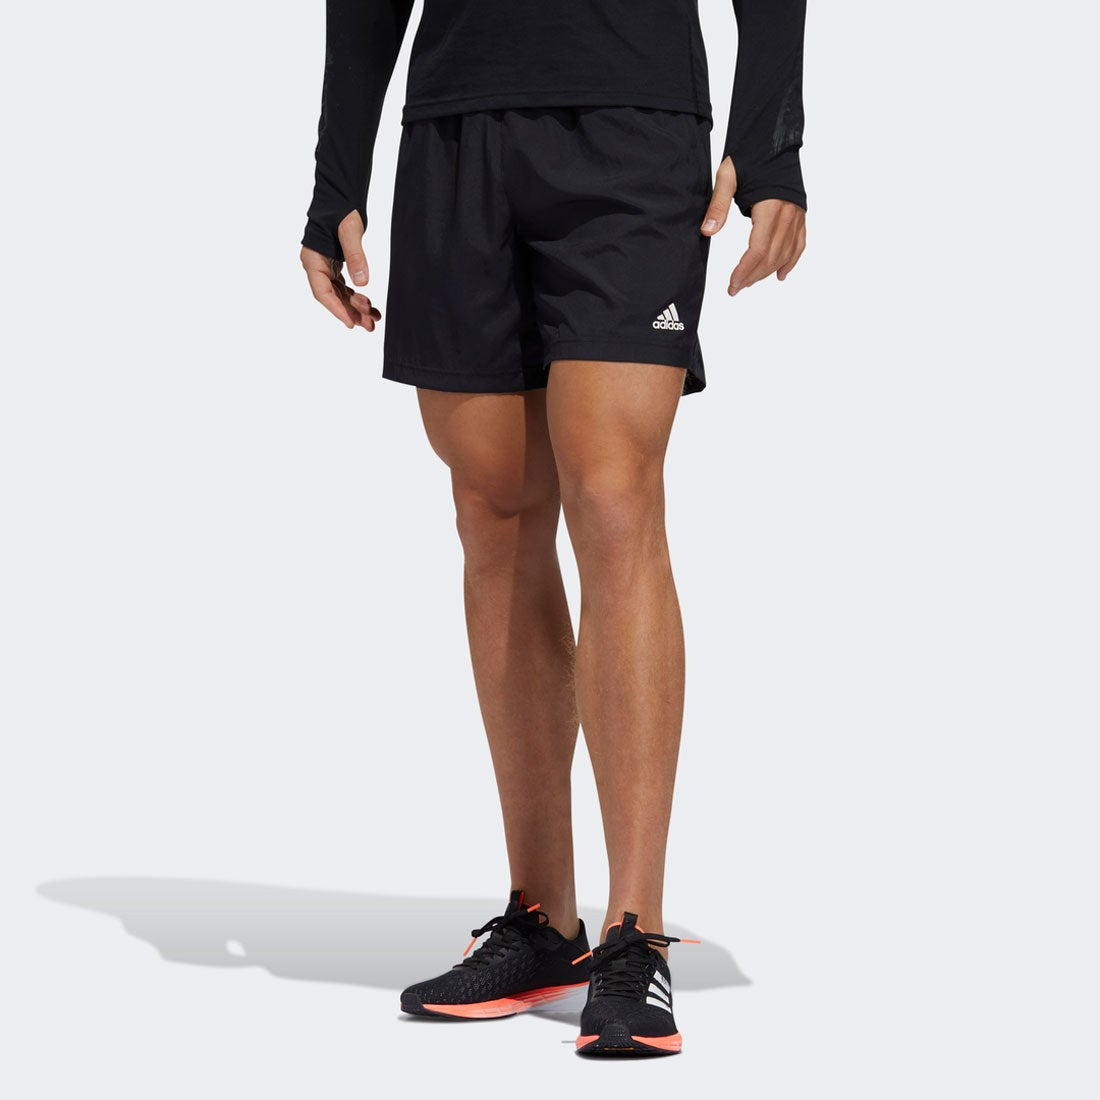 アディダス adidas RUN IT SHORT PB 3 STRIPES M (ブラック)